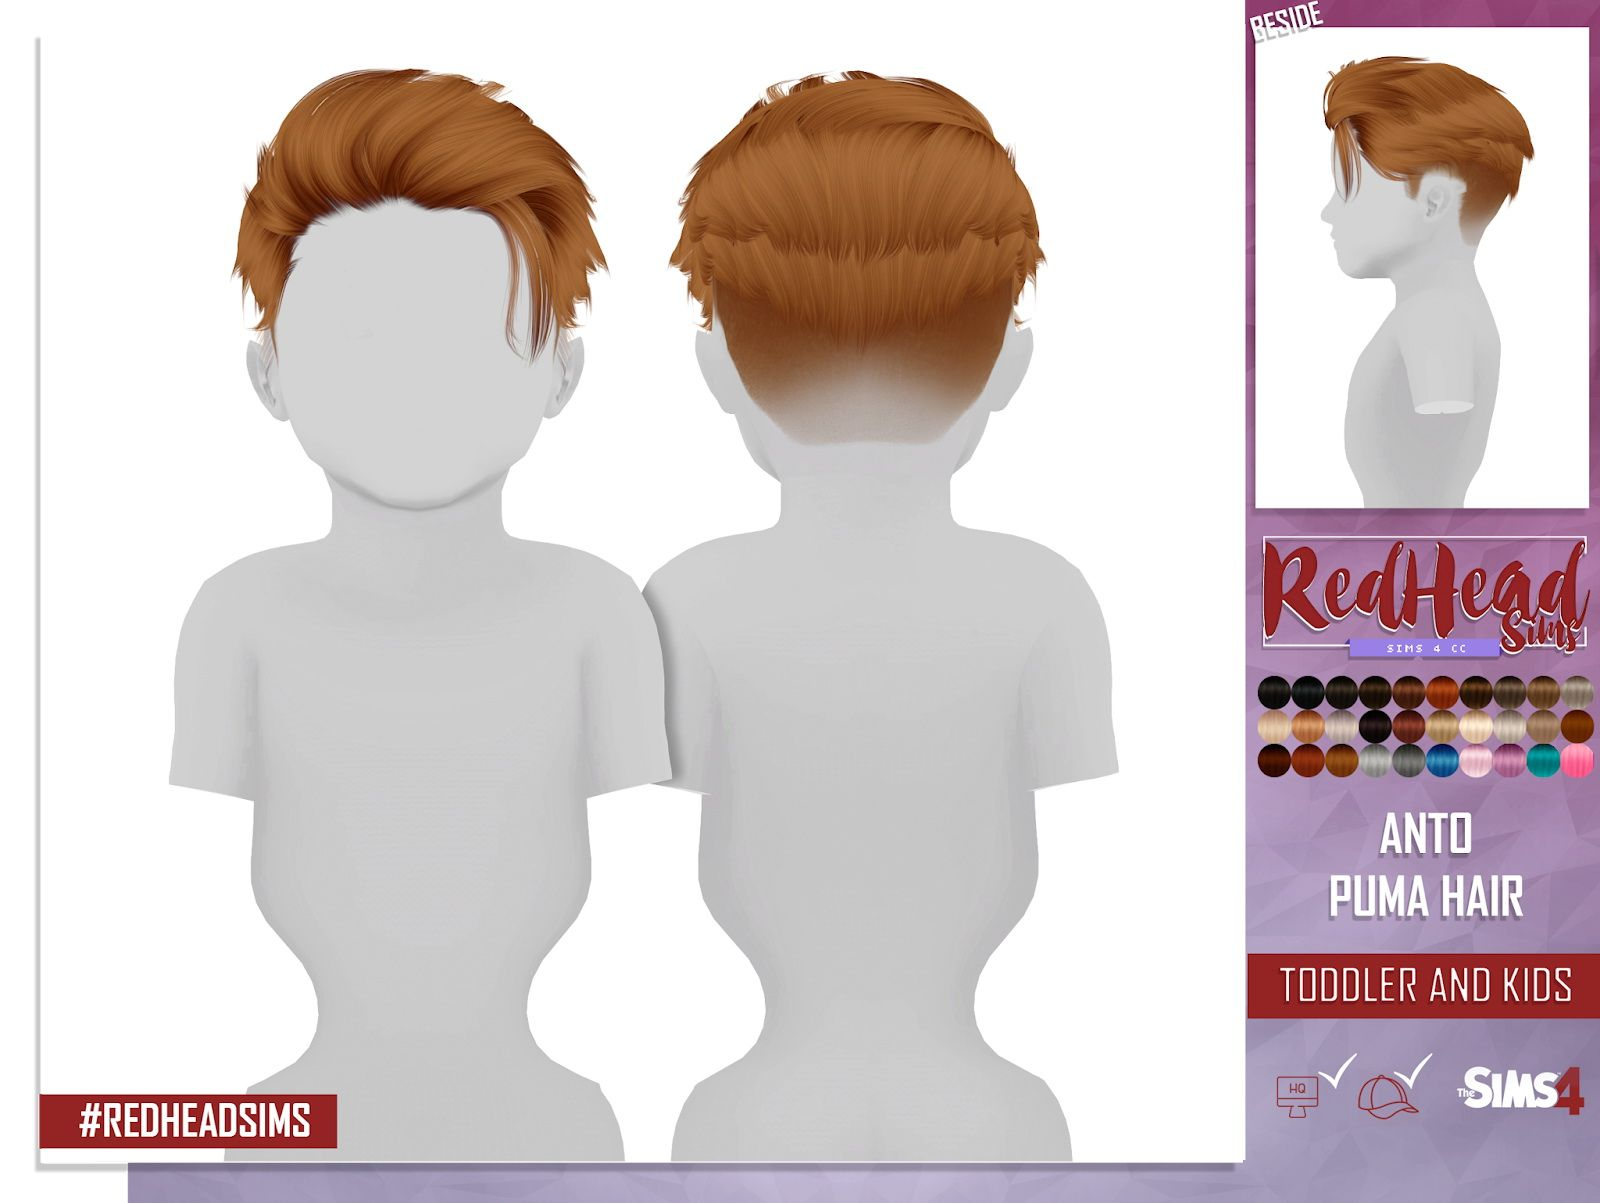 Coupure Electrique: Anto`s Puma hair retextured kids and toddlers version #kidhair